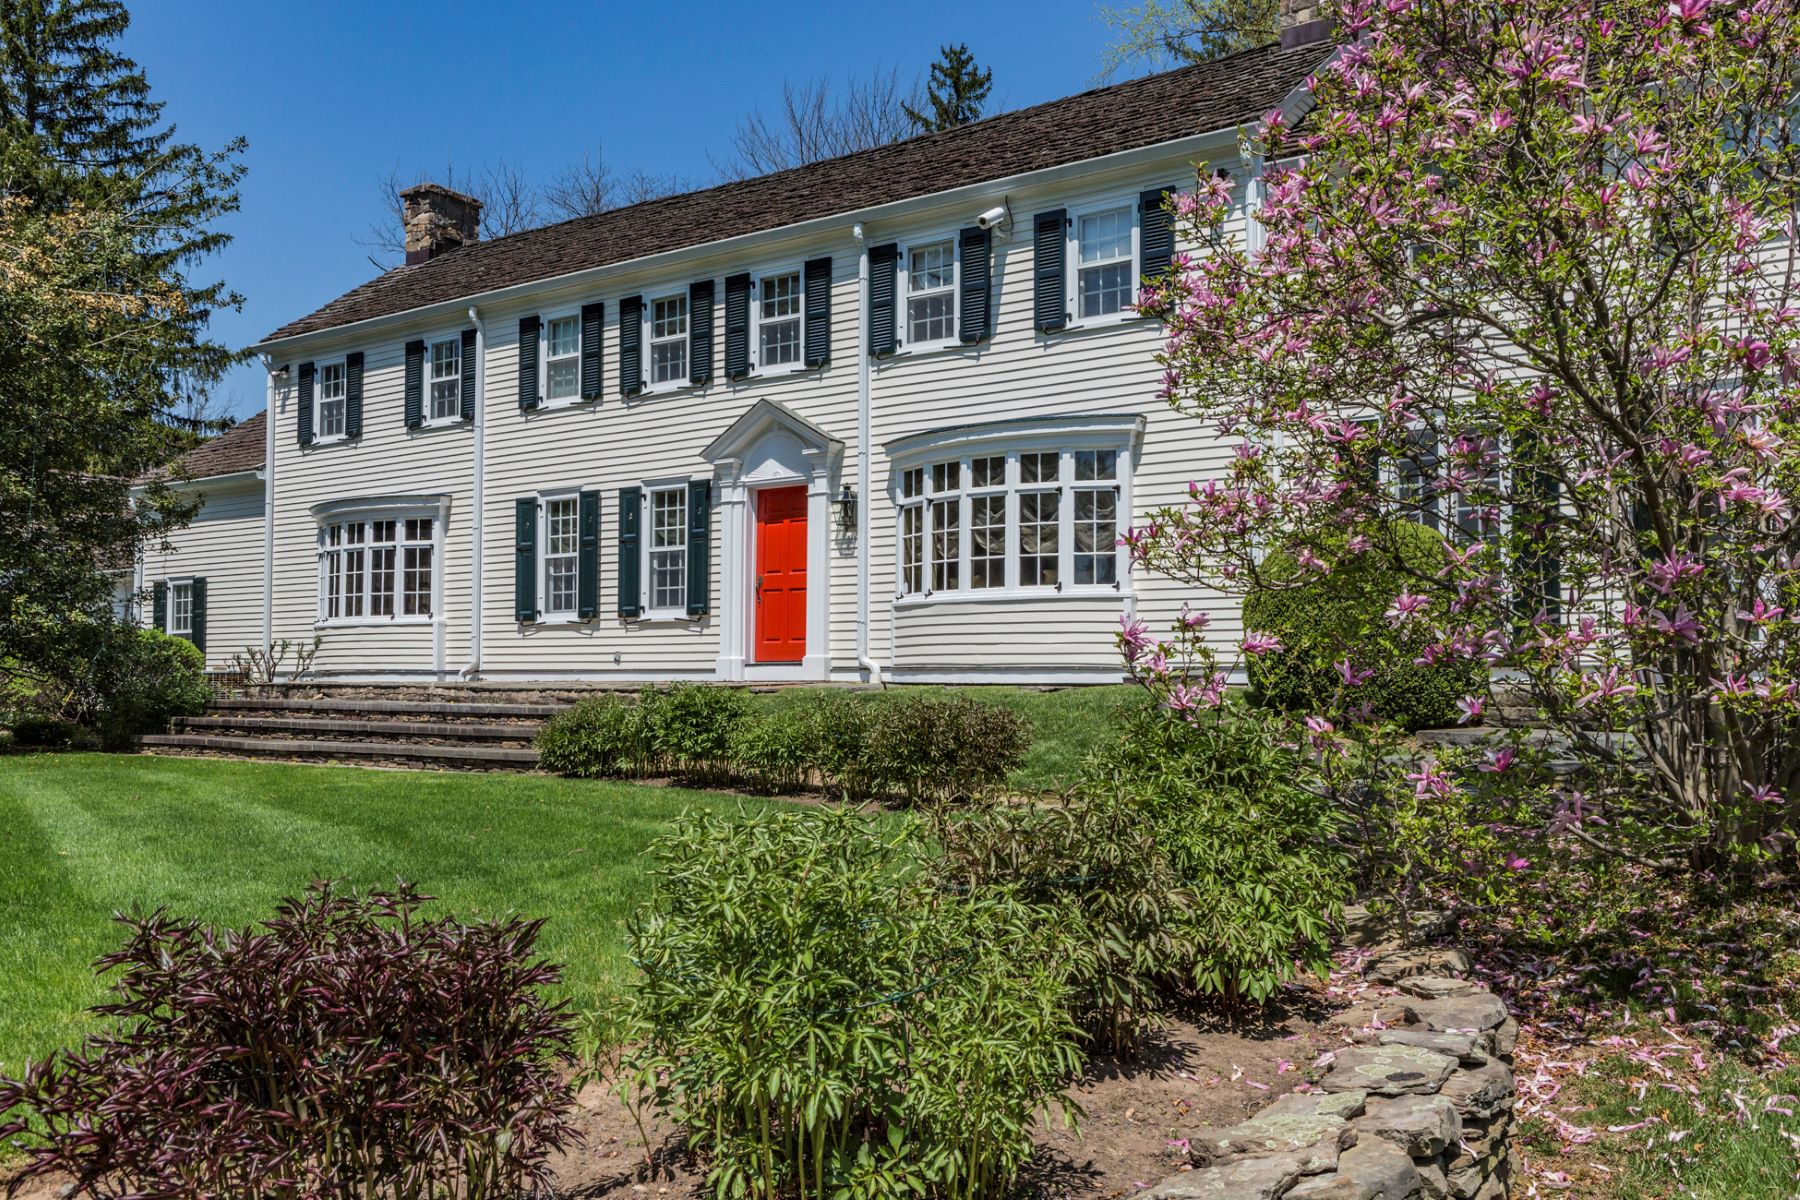 Single Family Homes for Sale at A Good-For-The-Soul Spirit Embodies This Home 179 Stony Brook Road, Hopewell, New Jersey 08525 United States